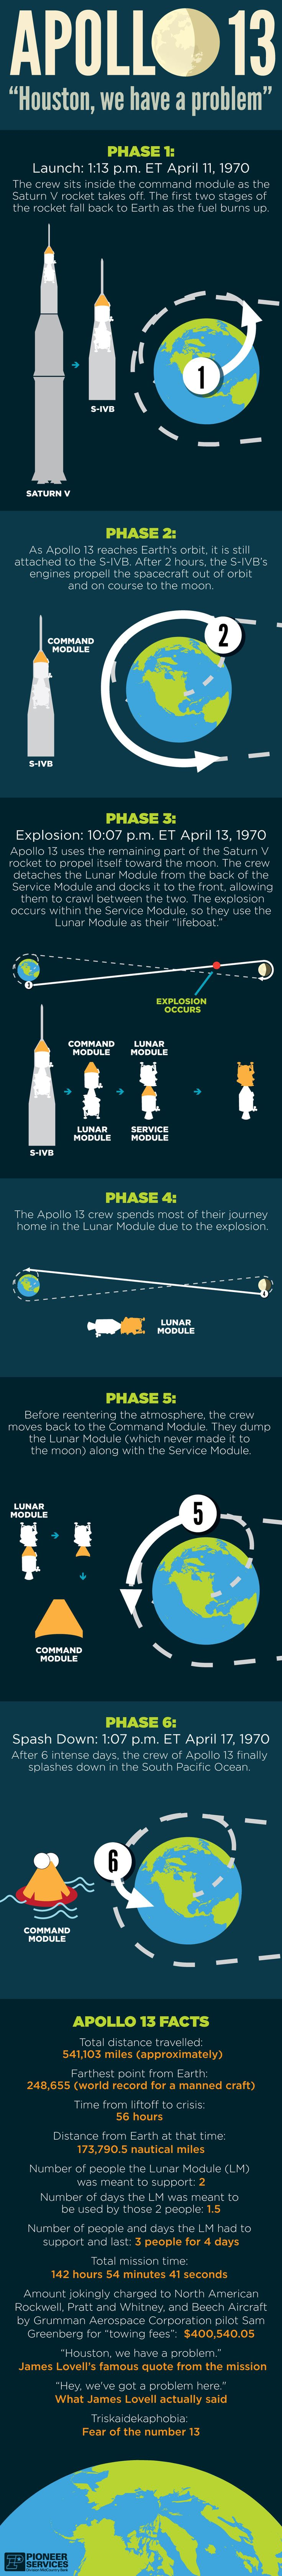 Apollo 13 Houston, We Have A Problem #infographic